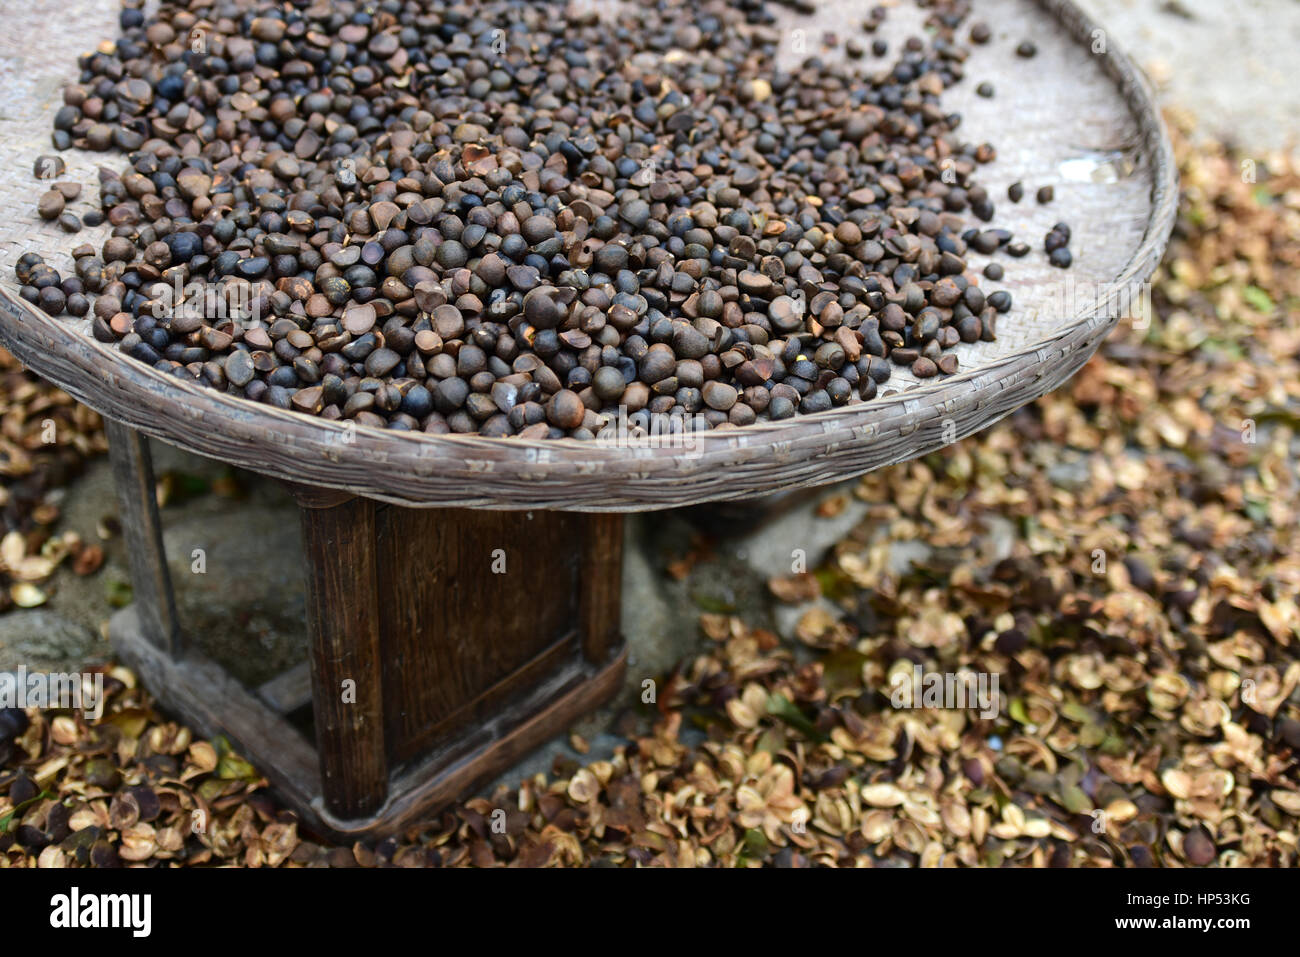 Camellia Oil Seed For Tea Oil With Old Bamboo Basket In An Old Stock Photo Alamy